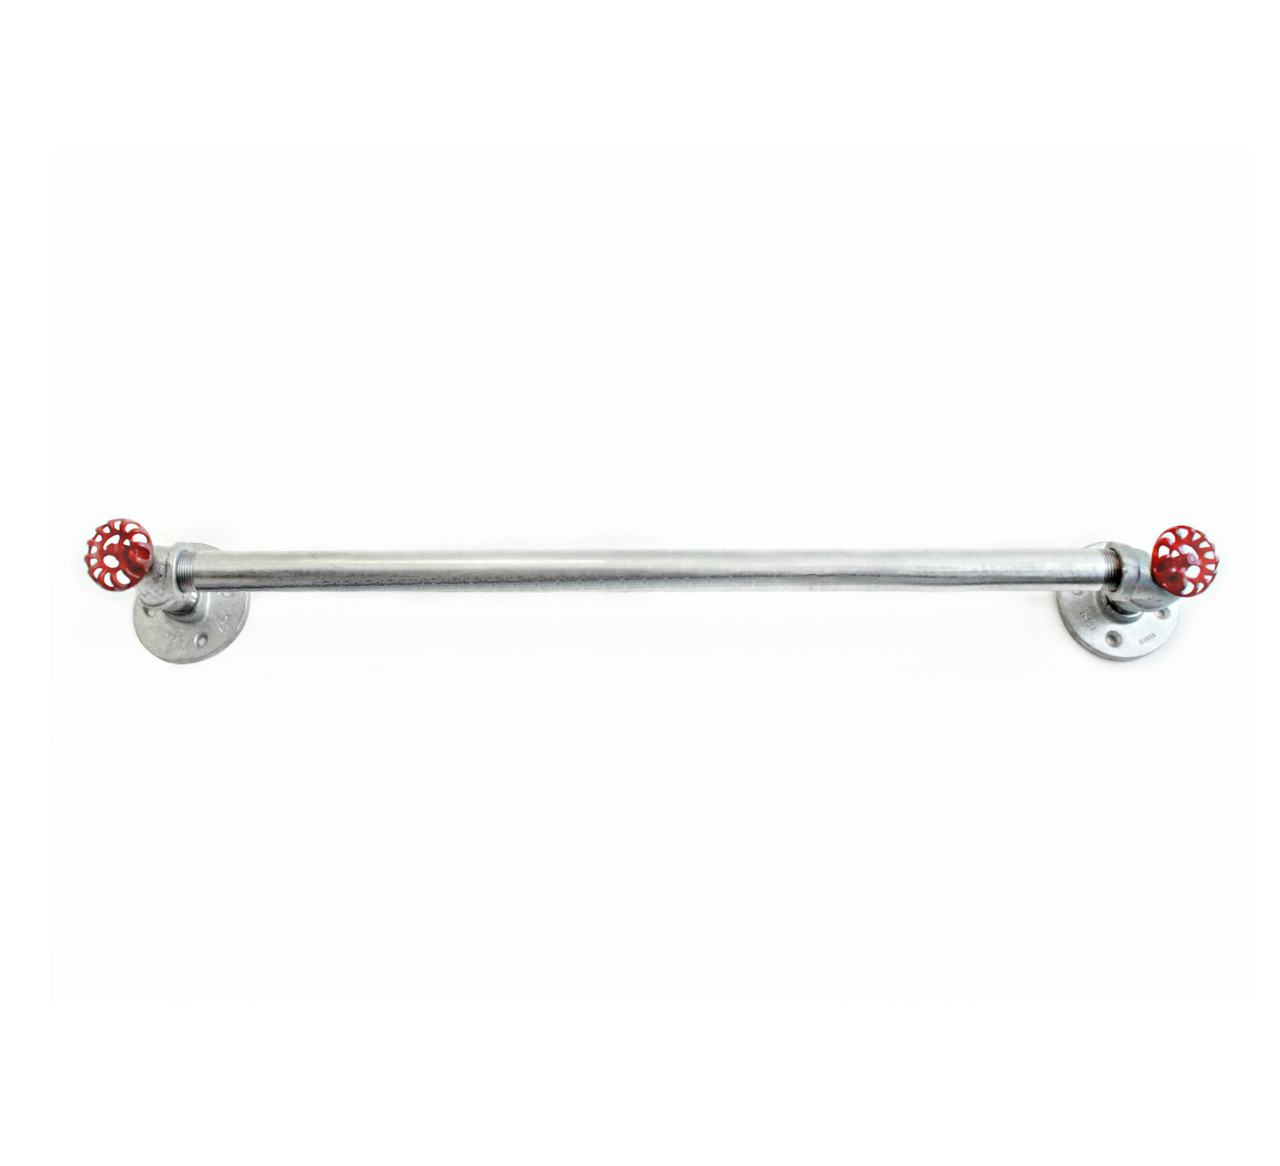 towel bar with towel. Delighful Towel Galvanized Pipe Industrial Towel Bar Bathroom Towel Holder Black  Decor Hanger Fixture Intended With